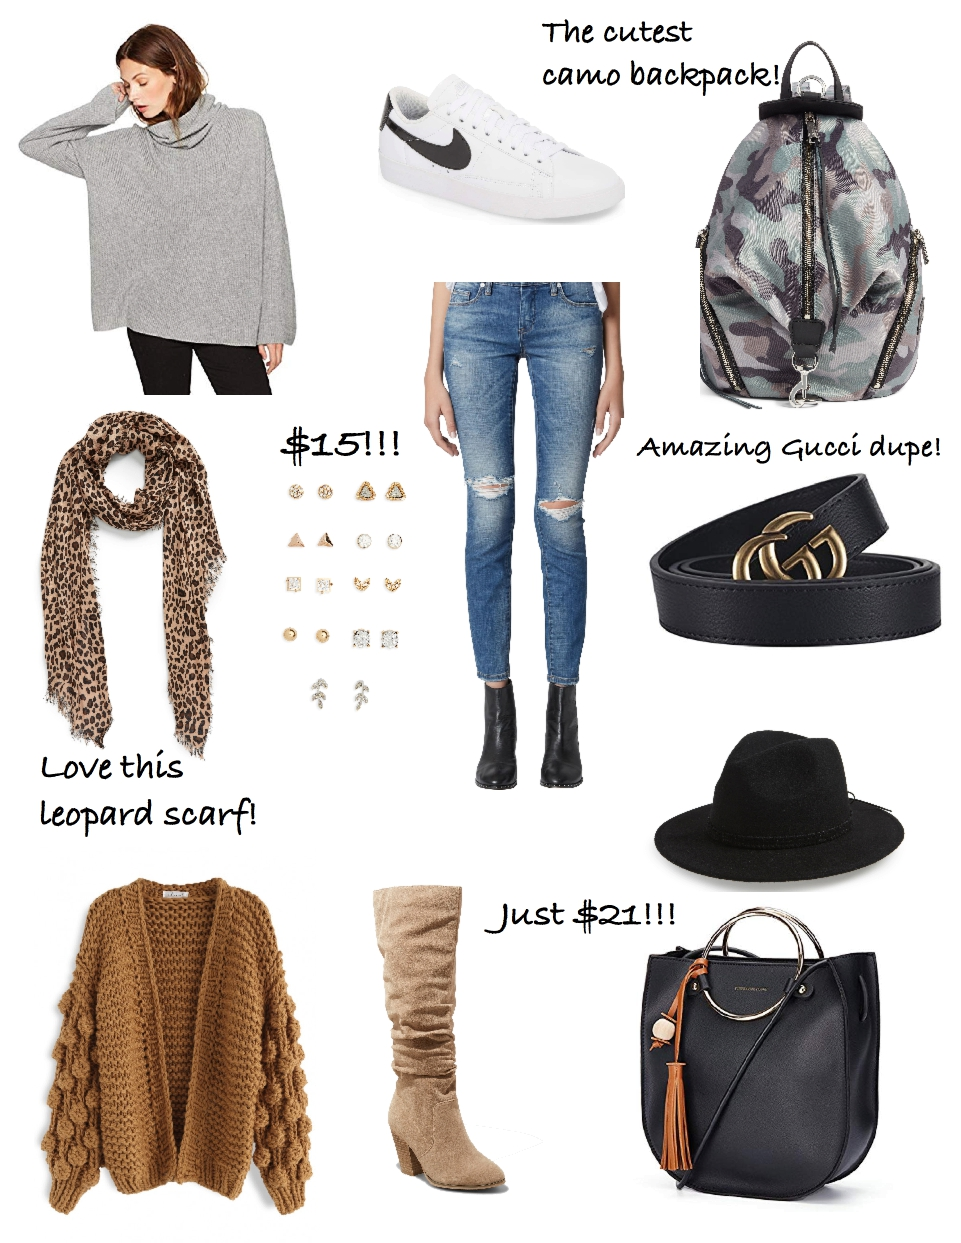 fall trends 2018, fall 2018 wish list, trending for fall 2018, whats in my cart, best fall 2018 buys